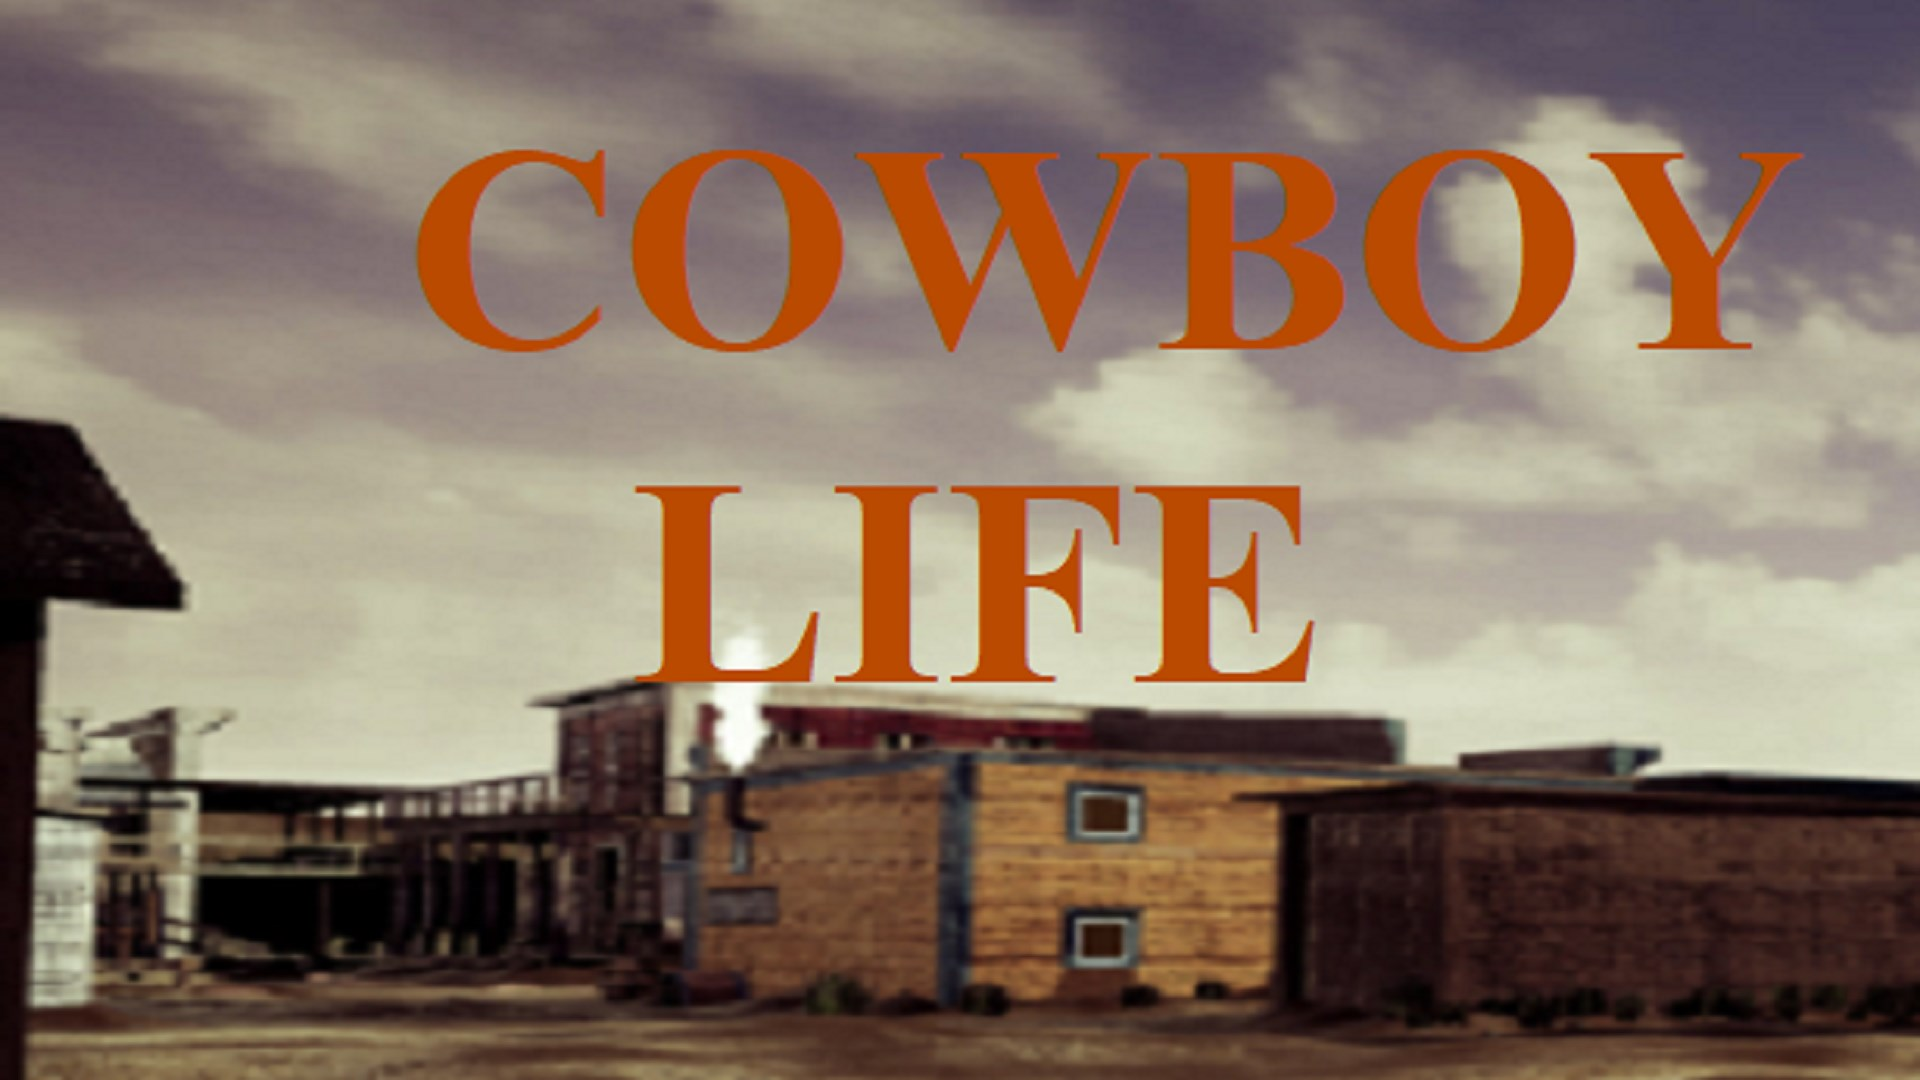 Find the best laptop for Cowboy Life